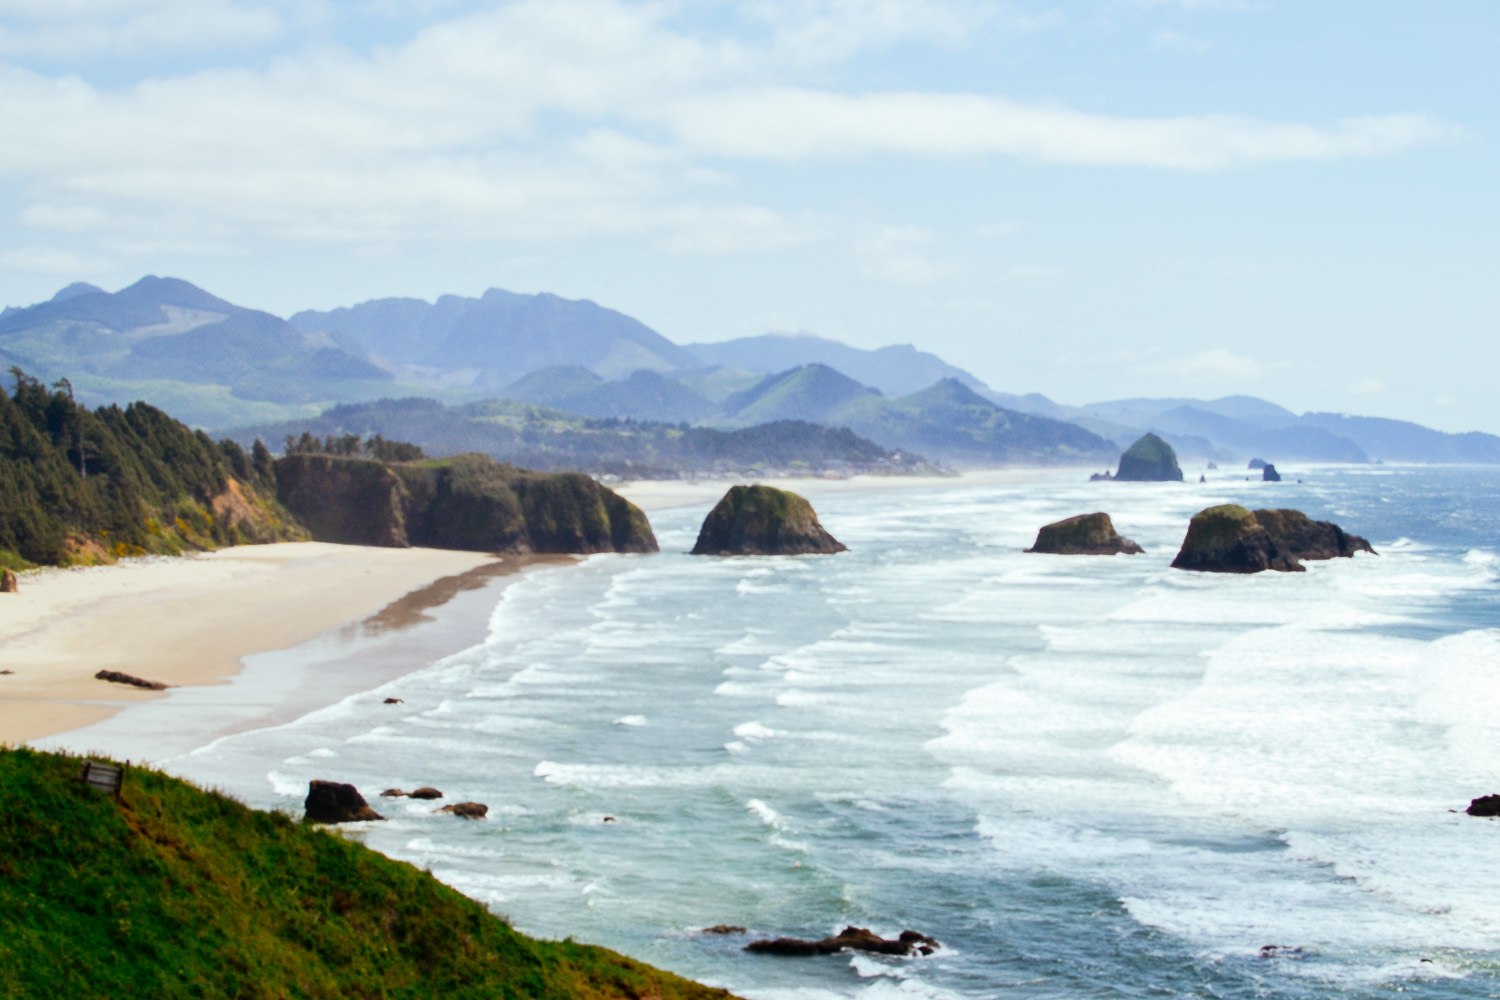 View of Cannon beach from Ecola State Park